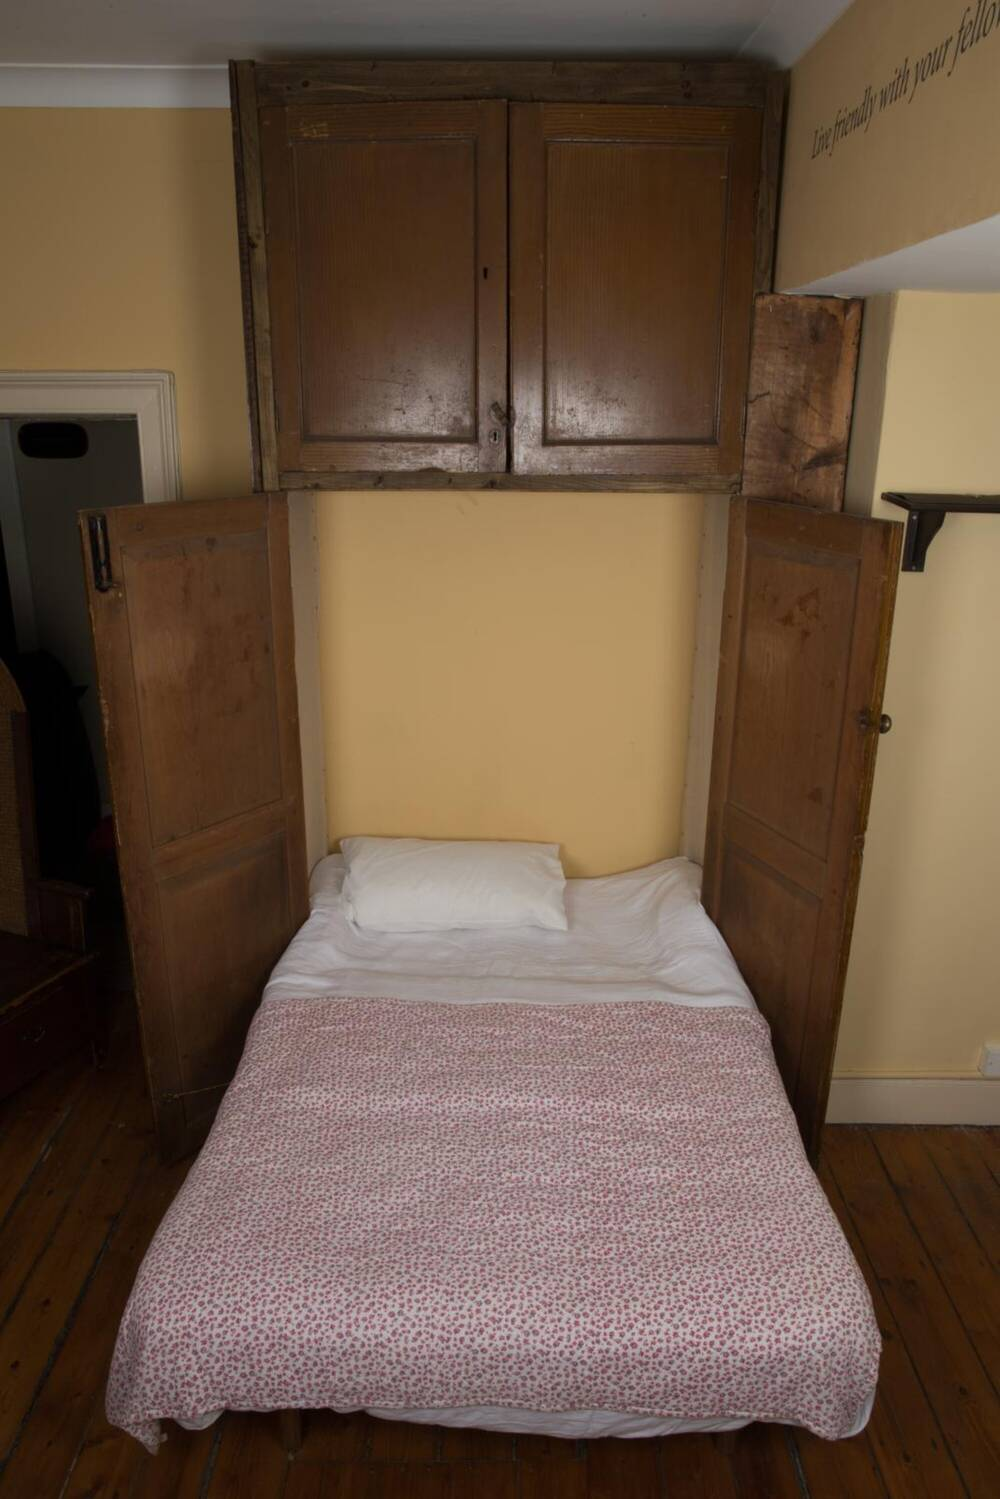 A pull-down bed, which is normally kept hidden behind a large wooden cupboard.